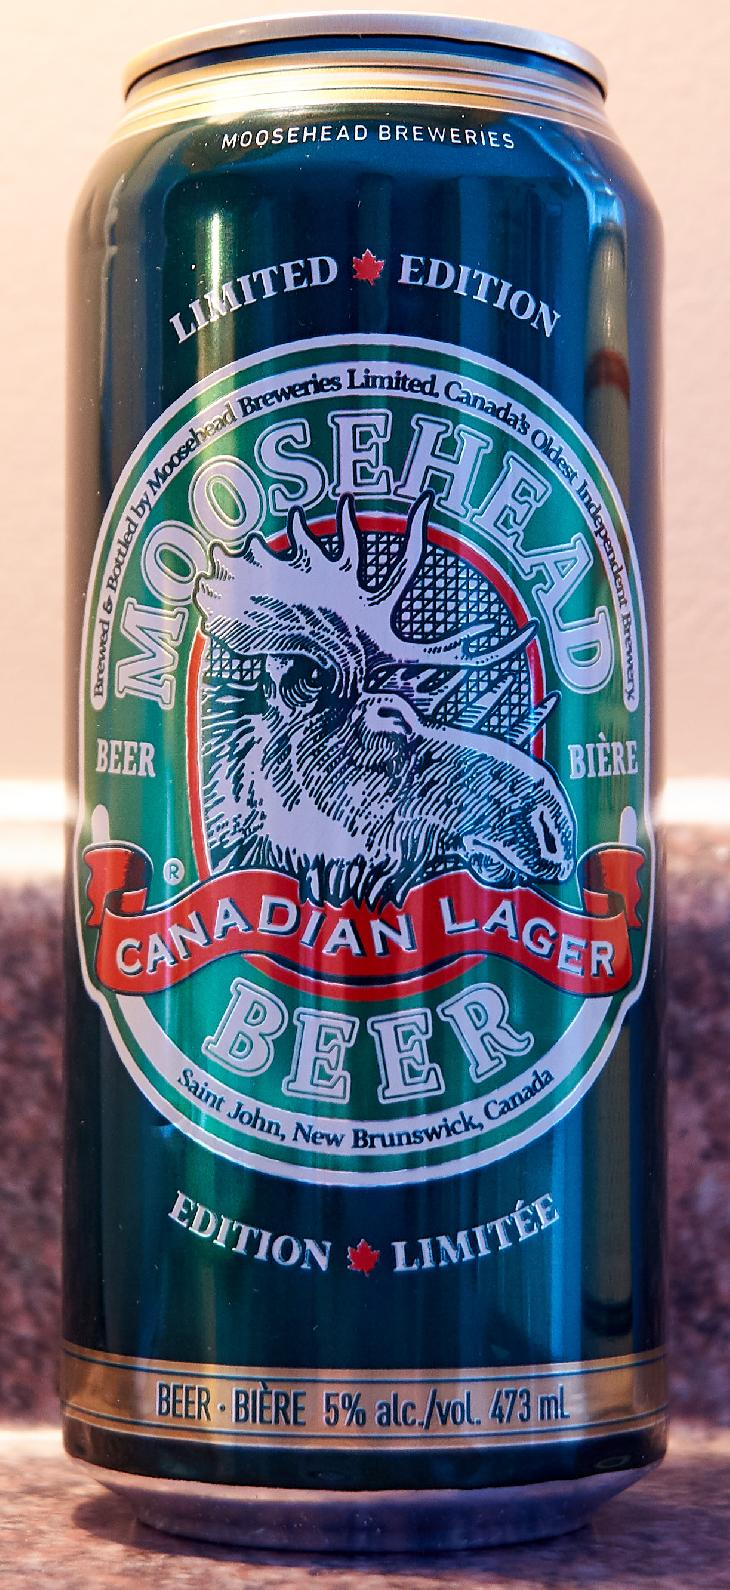 This is front of the 473ml Moosehead Limited Edition 150 Years beer can.  Released in 2017 to commemorate their 150th anniversary brewing.